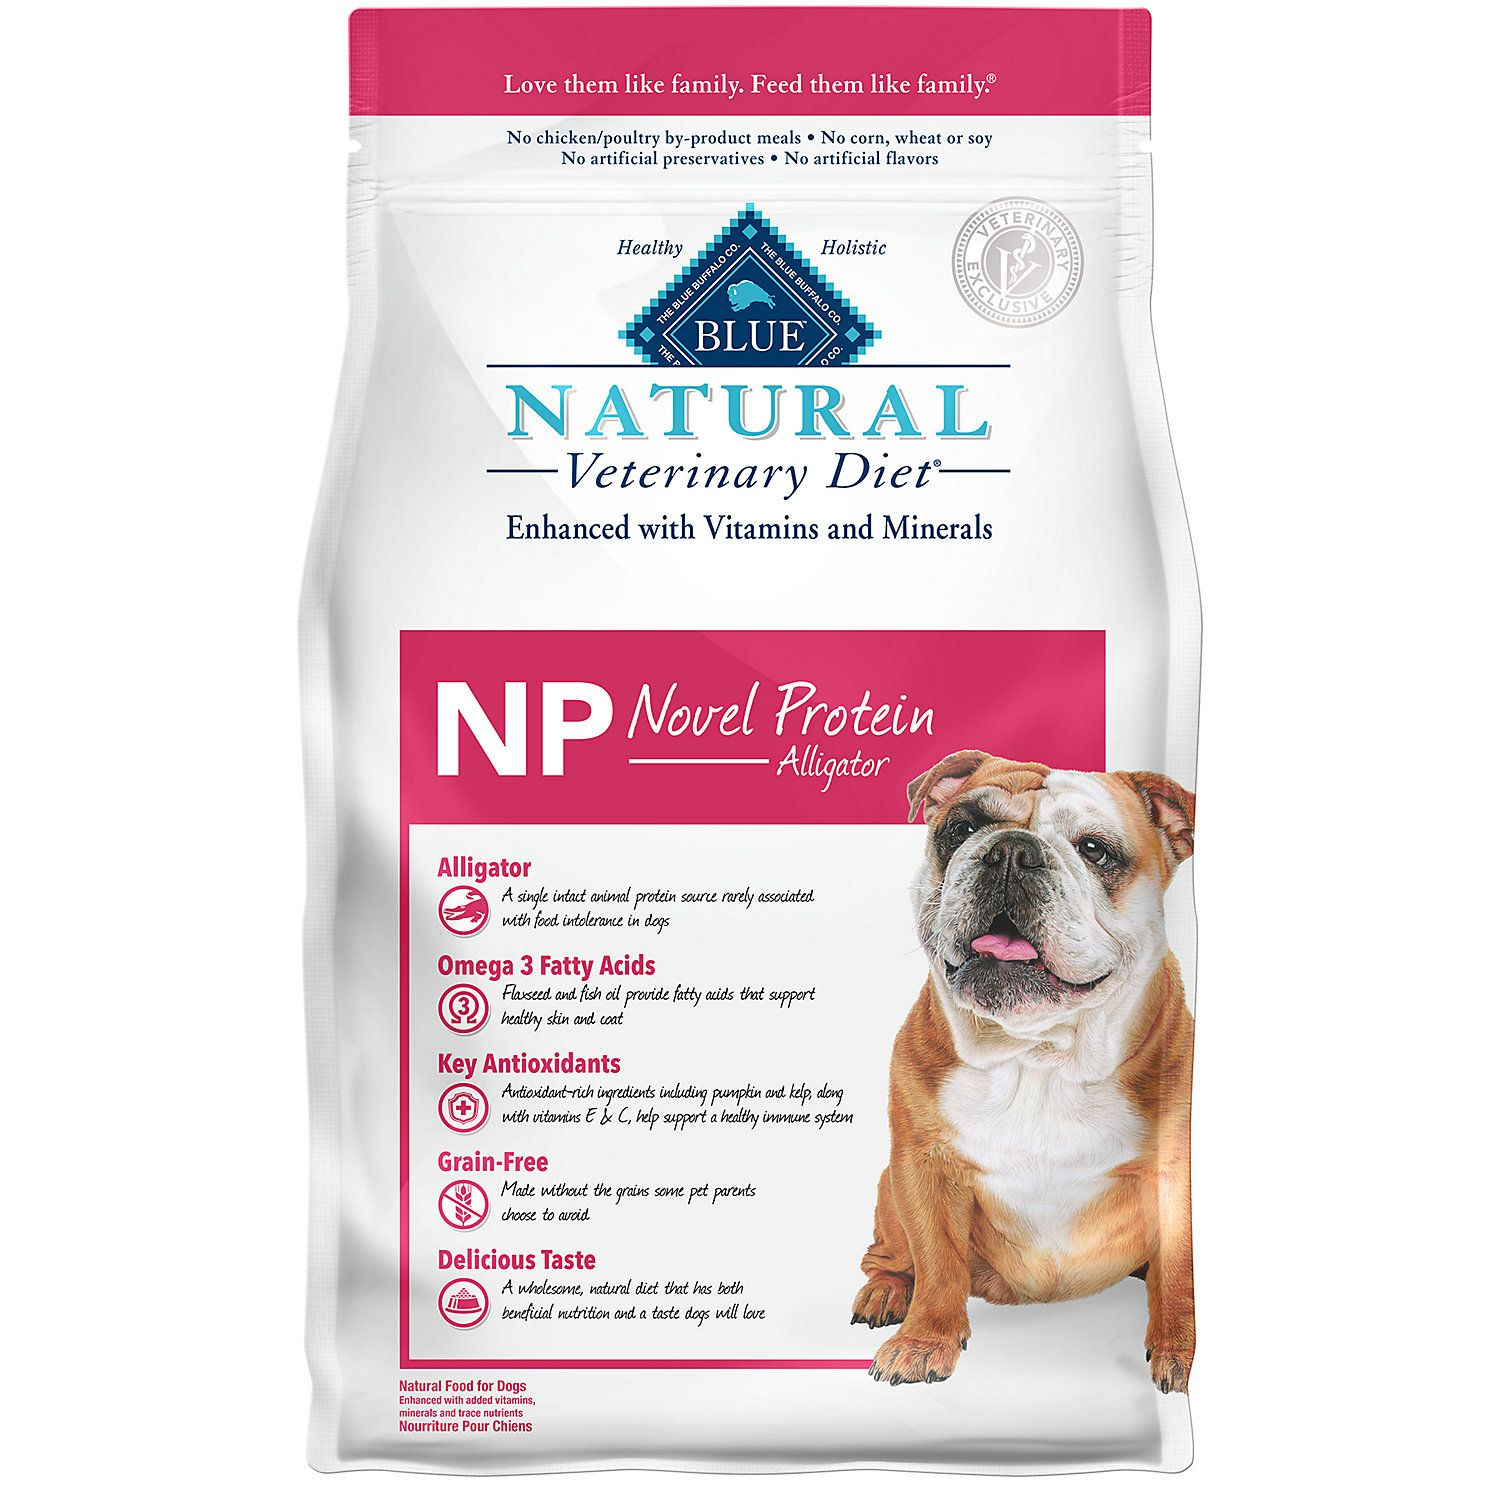 Blue Buffalo Blue Natural Veterinary Diet Np Novel Protein Alligator Dry Dog Food 6 Lbs Petco In 2020 Dry Dog Food Blue Buffalo Dog Food Recipes